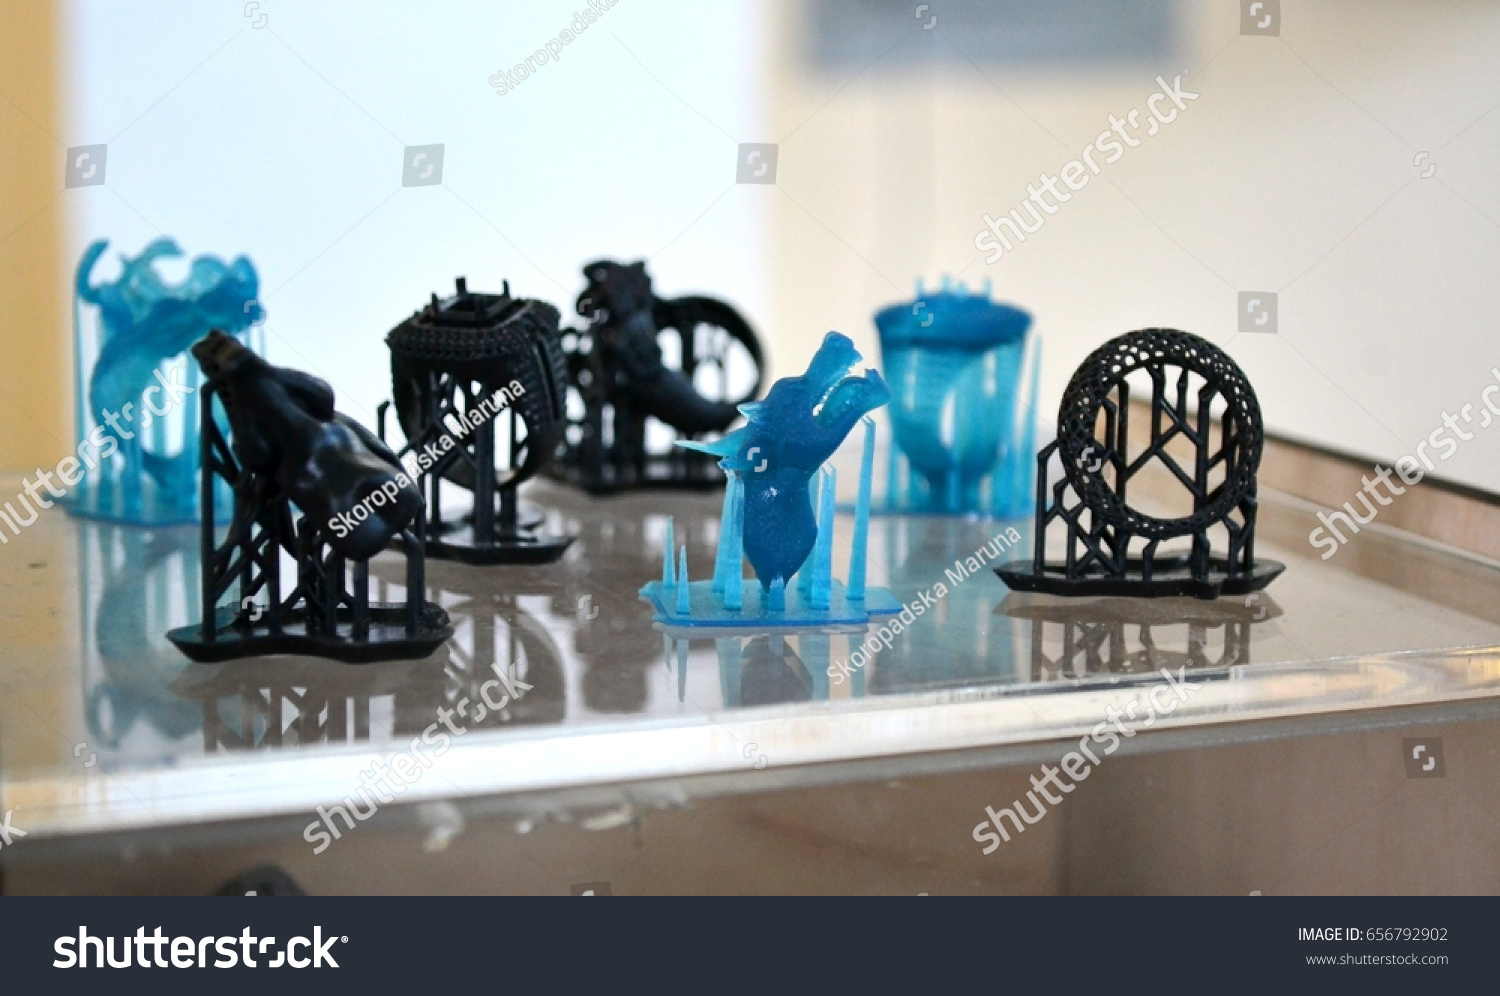 Objects Photopolymer Printed On 3d Printer Stock Photo (Edit